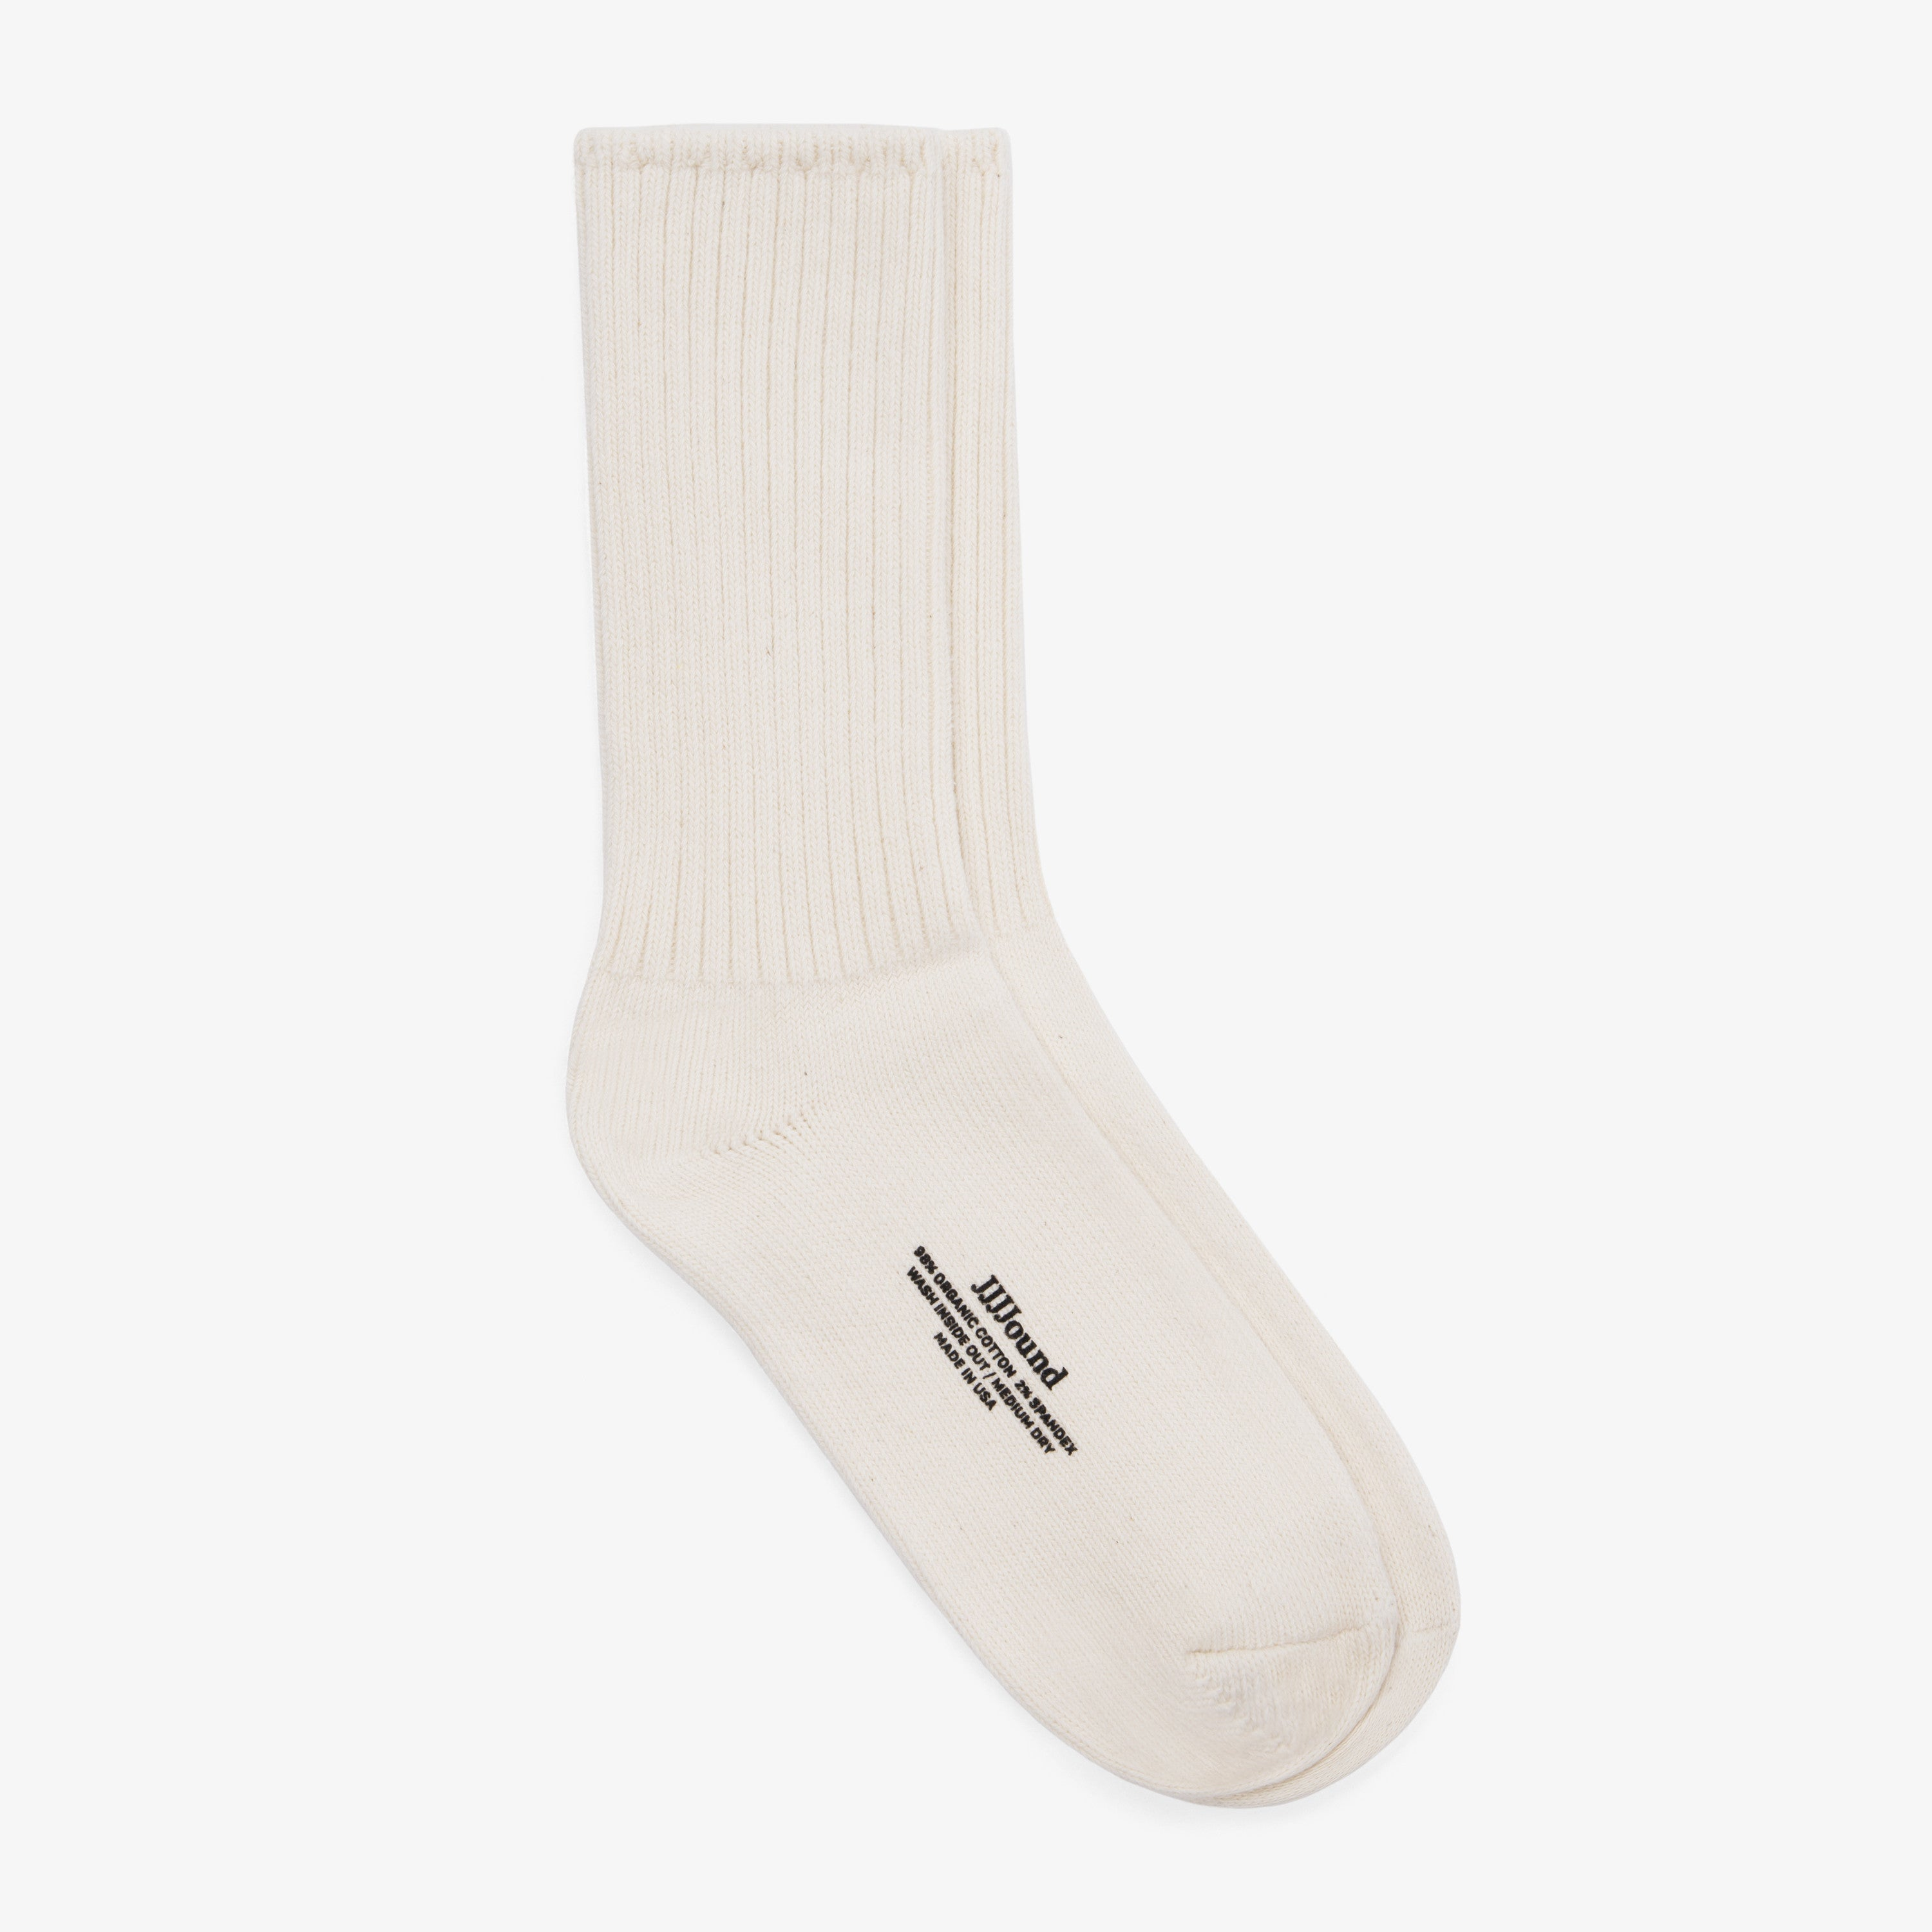 Organic Socks / Natural